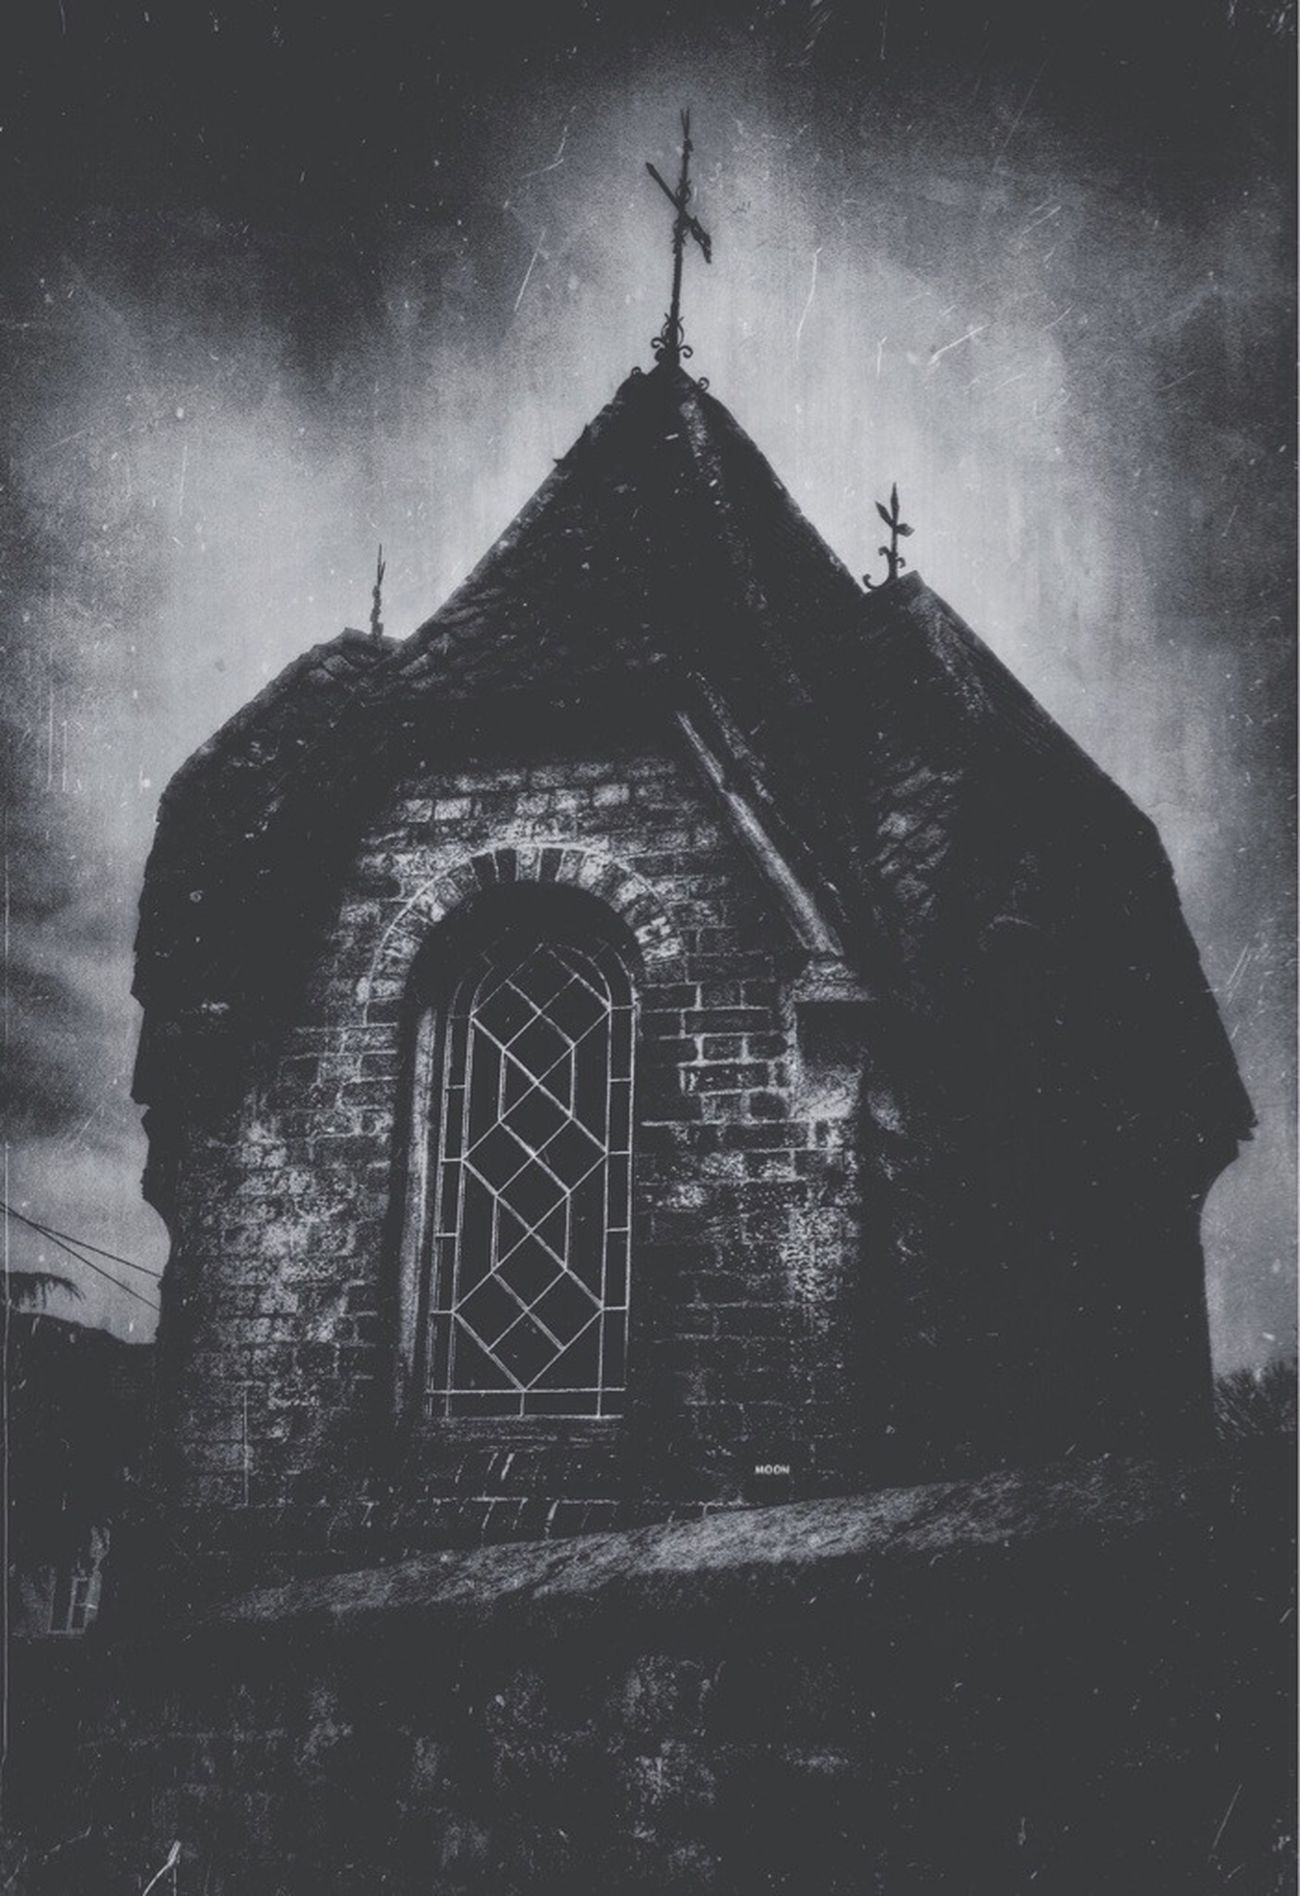 Fortheloveofblackandwhite Blackandwhite EyeEm Best Edits Spooky Architecture Taking Photos Out And About Creepy The Darkness Within Tadaa Community